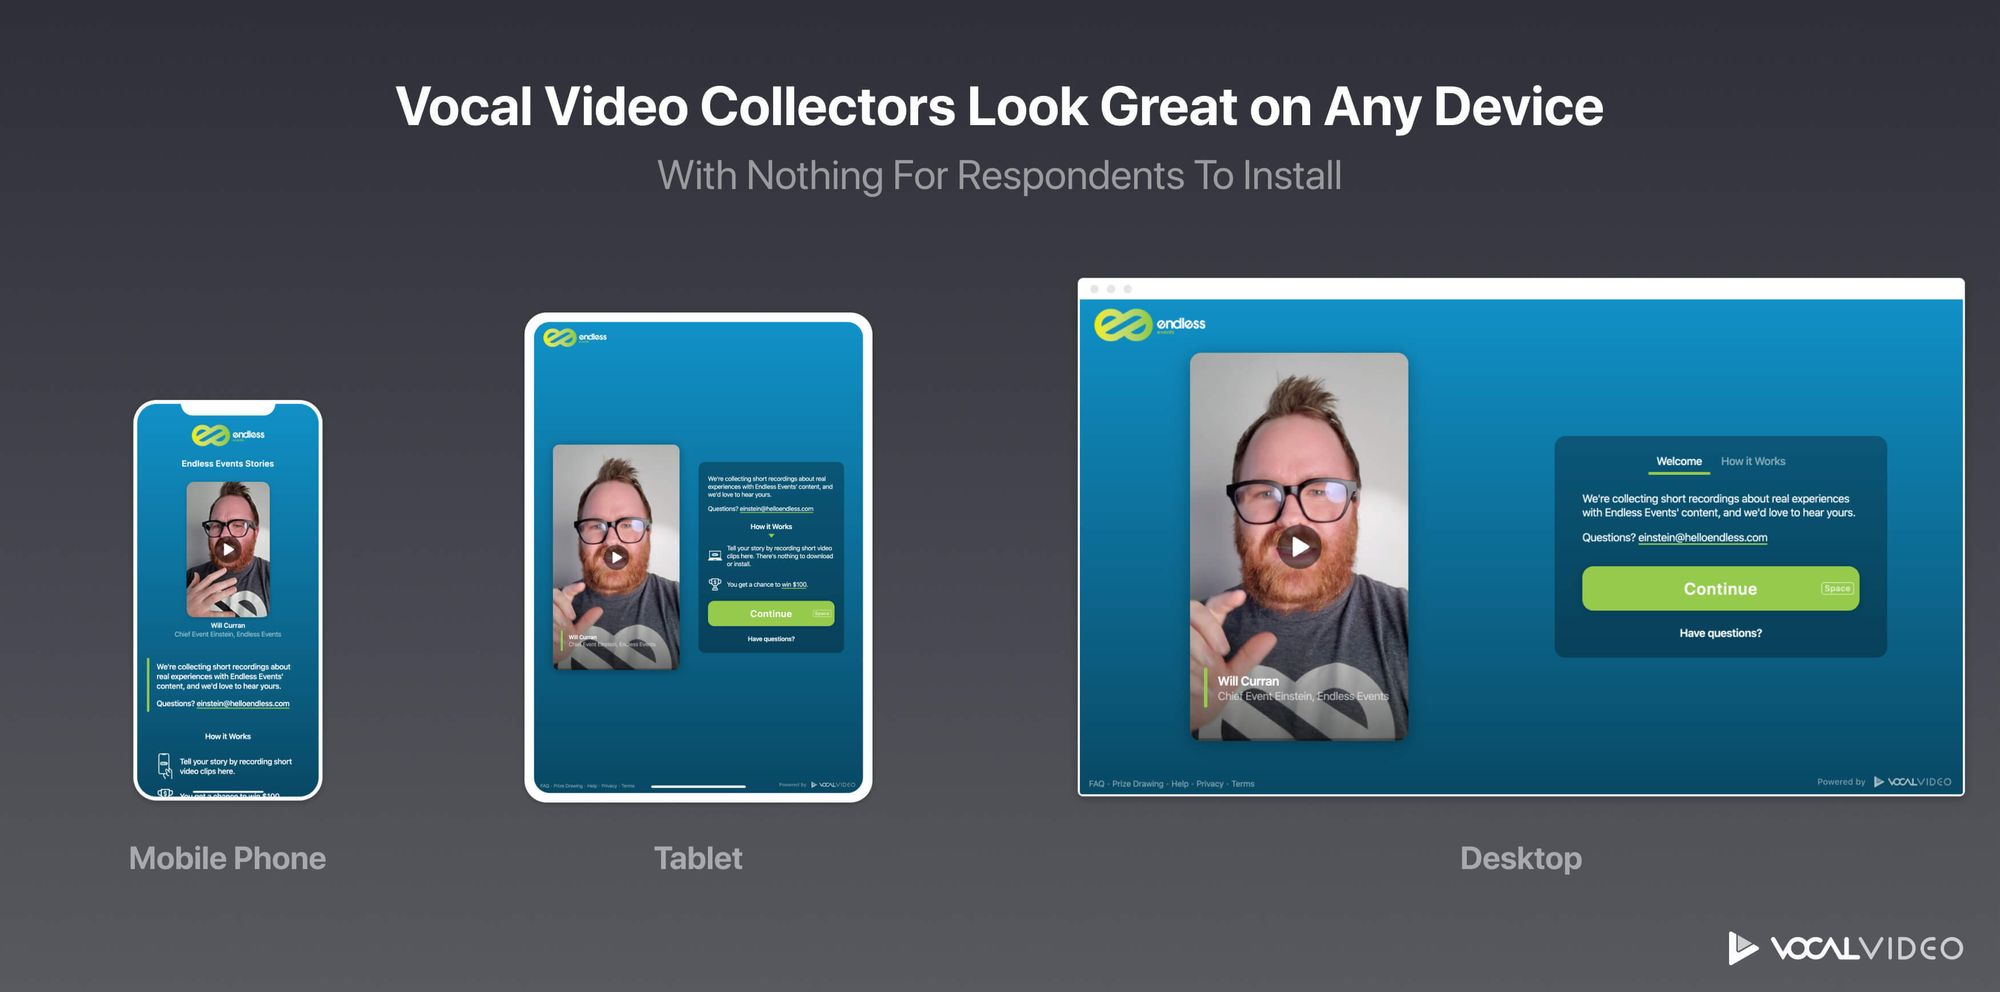 Vocal Video Collectors Look Great on Any Device with Nothing for Respondents to Install.